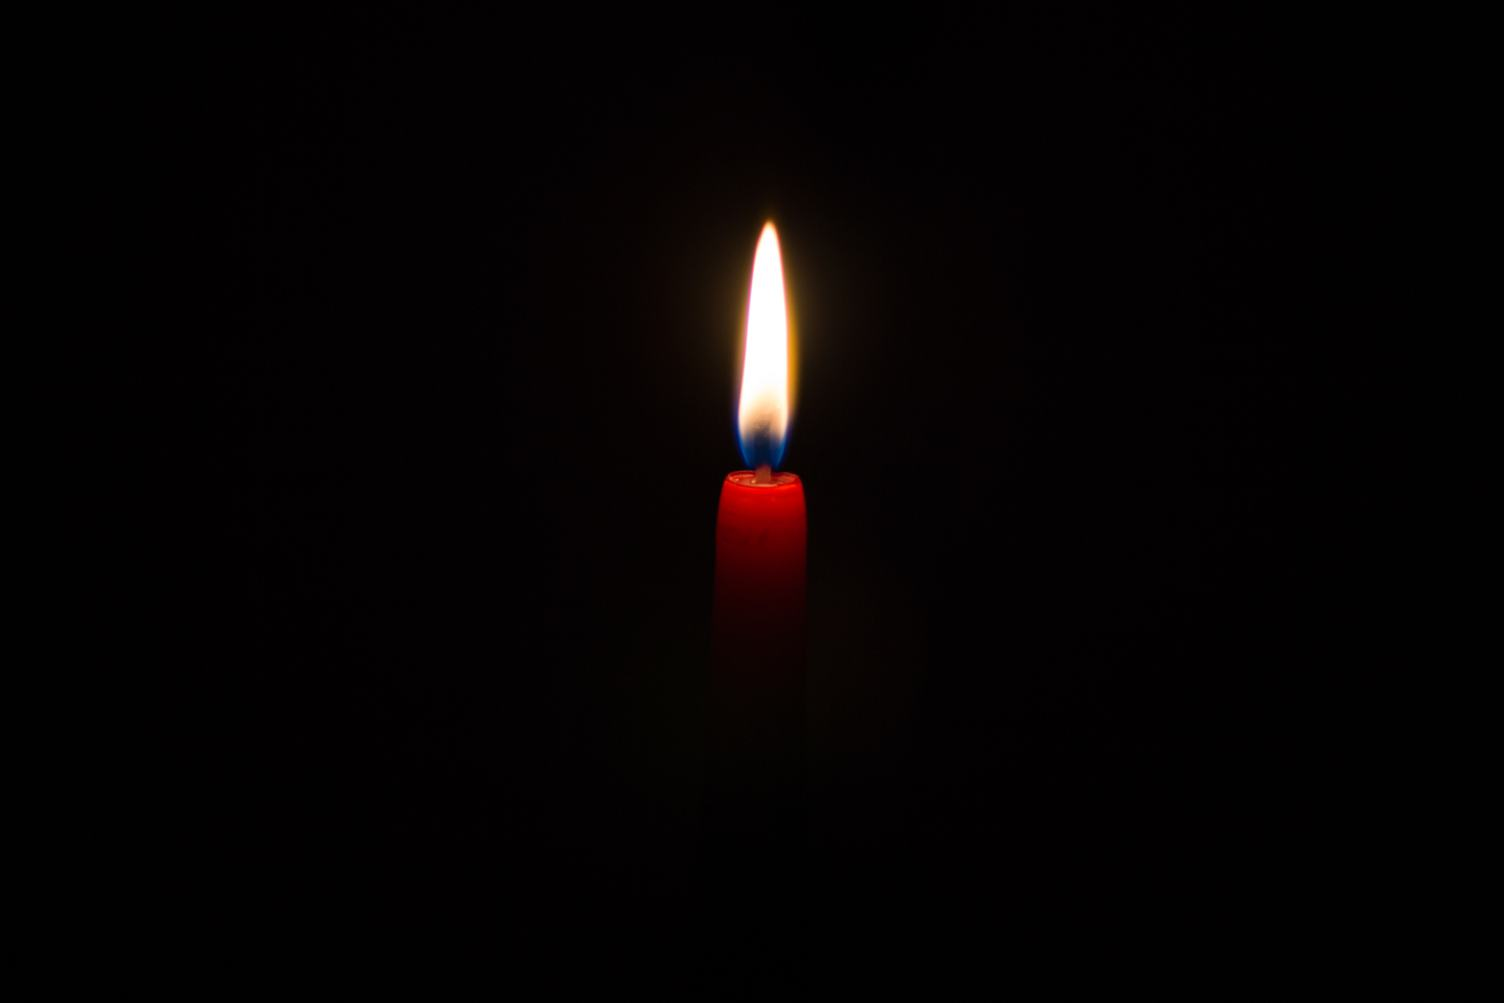 Red Candle against Black Background